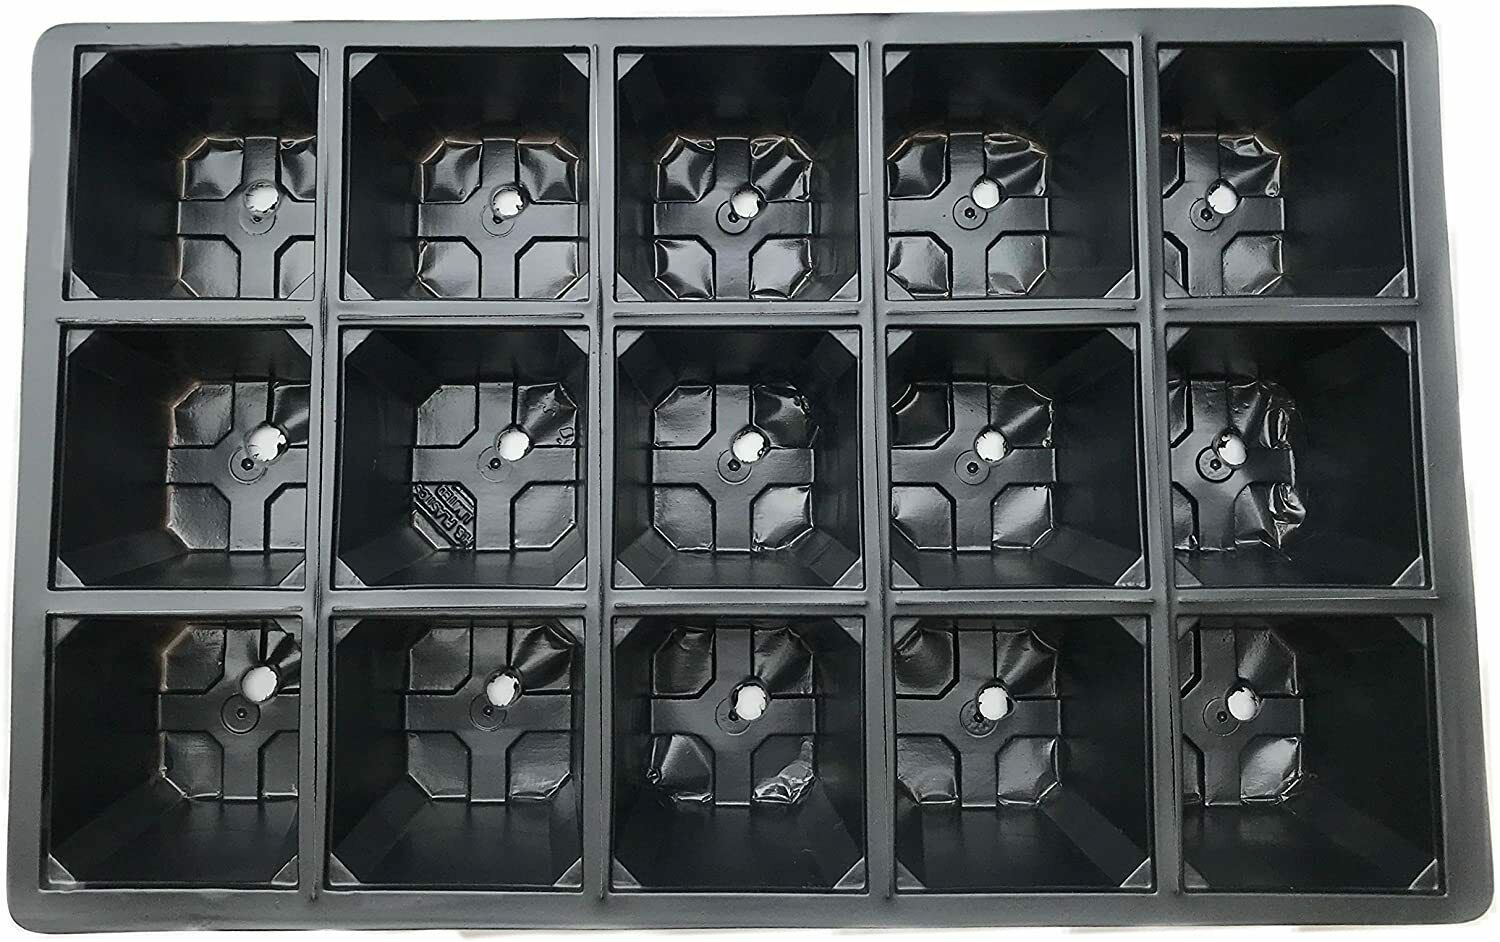 15 Cell Packof 60 Professional Grade Seed Trays Bedding Plant Seed Propagat Tray